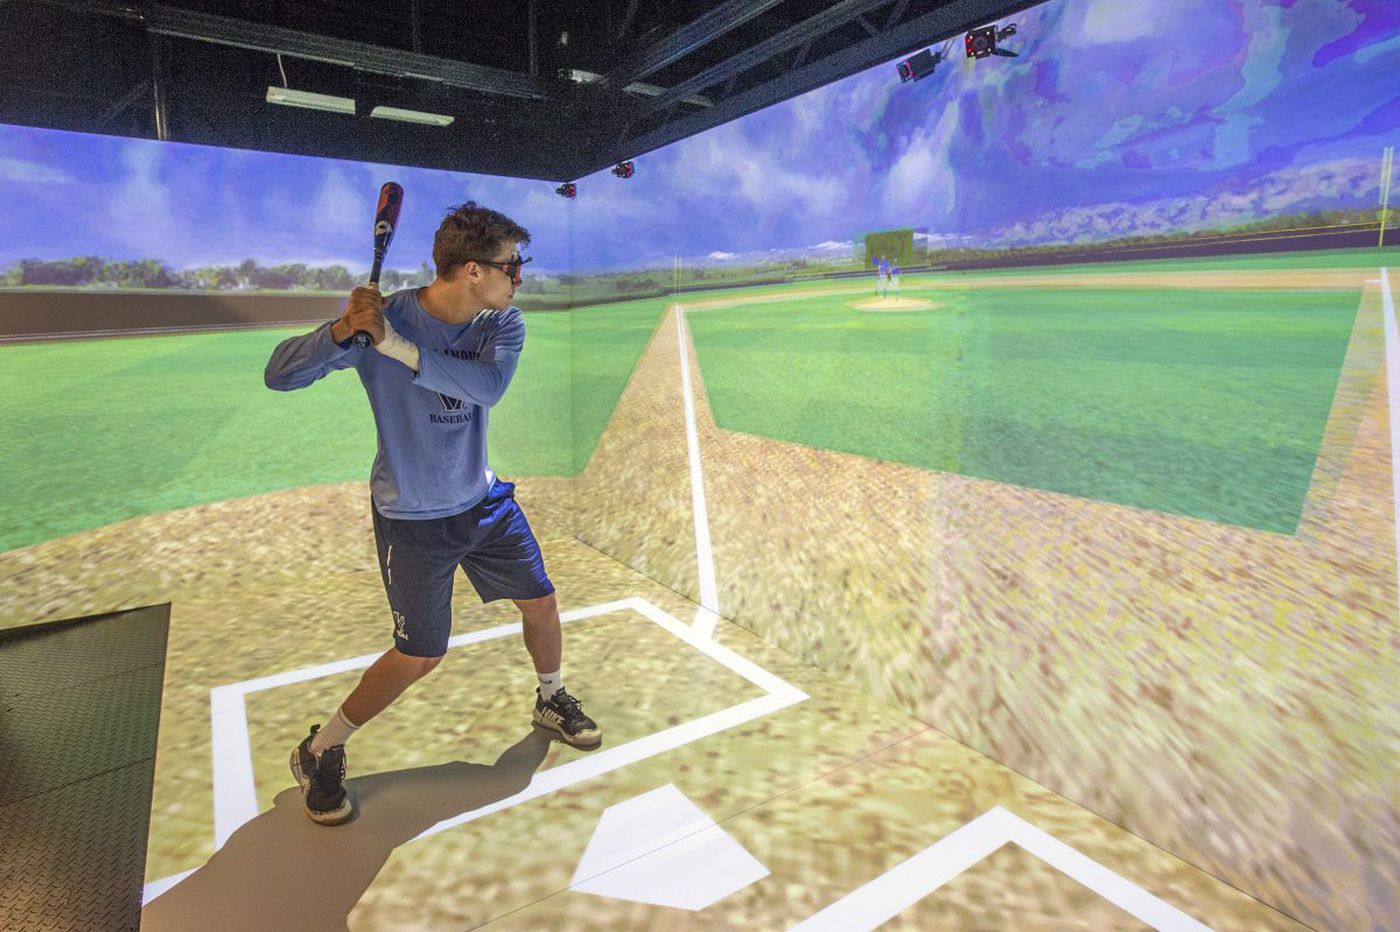 Taking a swing at virtual reality: How Villanova baseball is using tech to improve at the plate